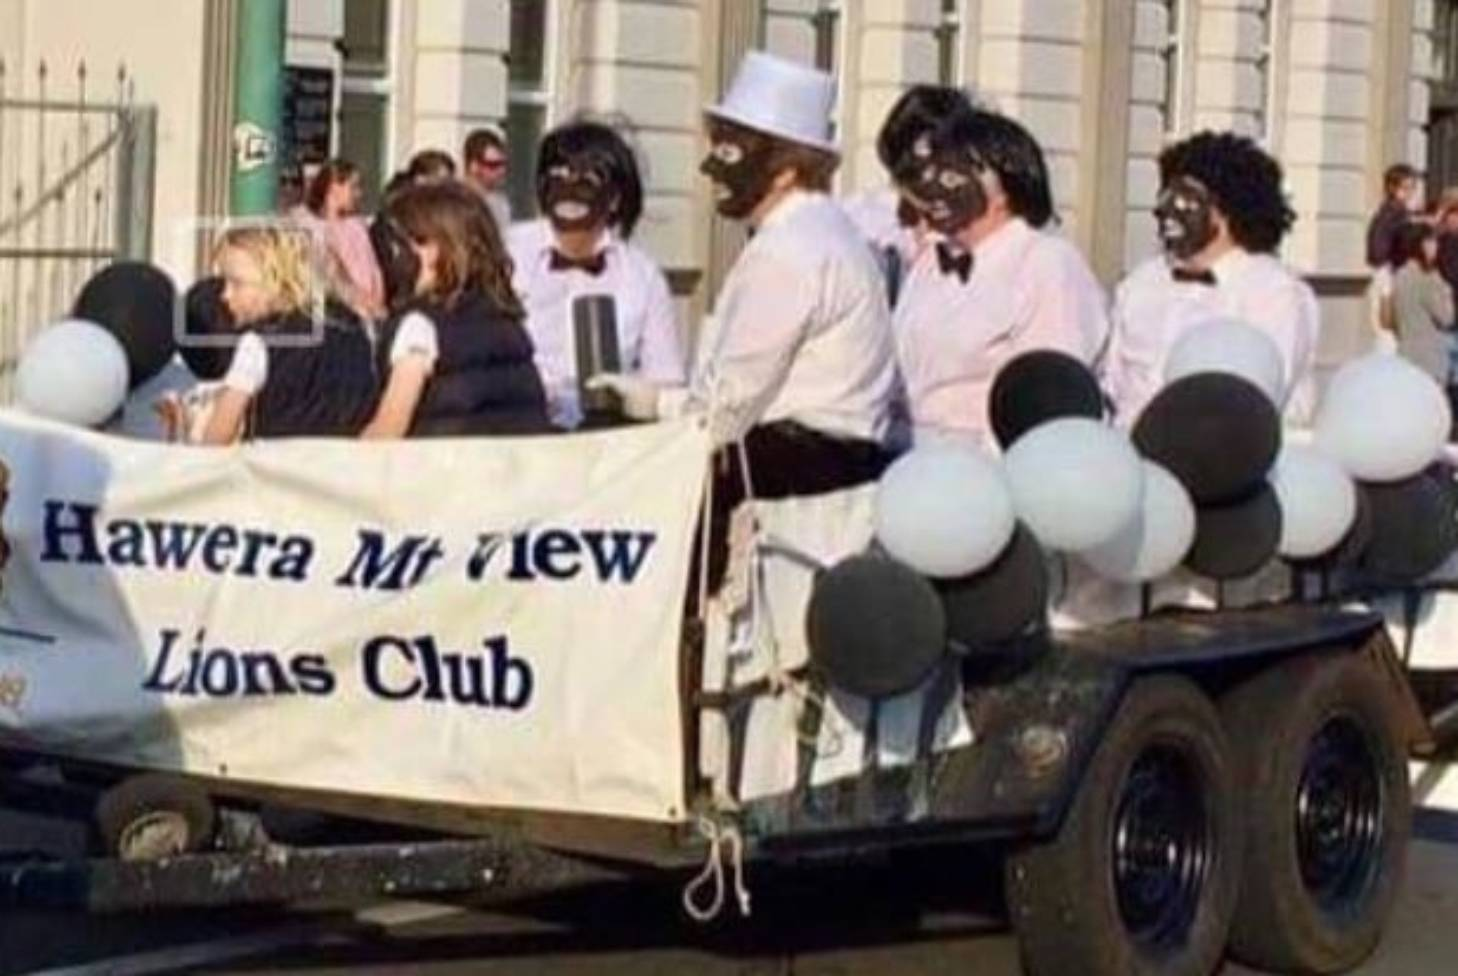 Lions Club decision to wear blackface at Hawera Community